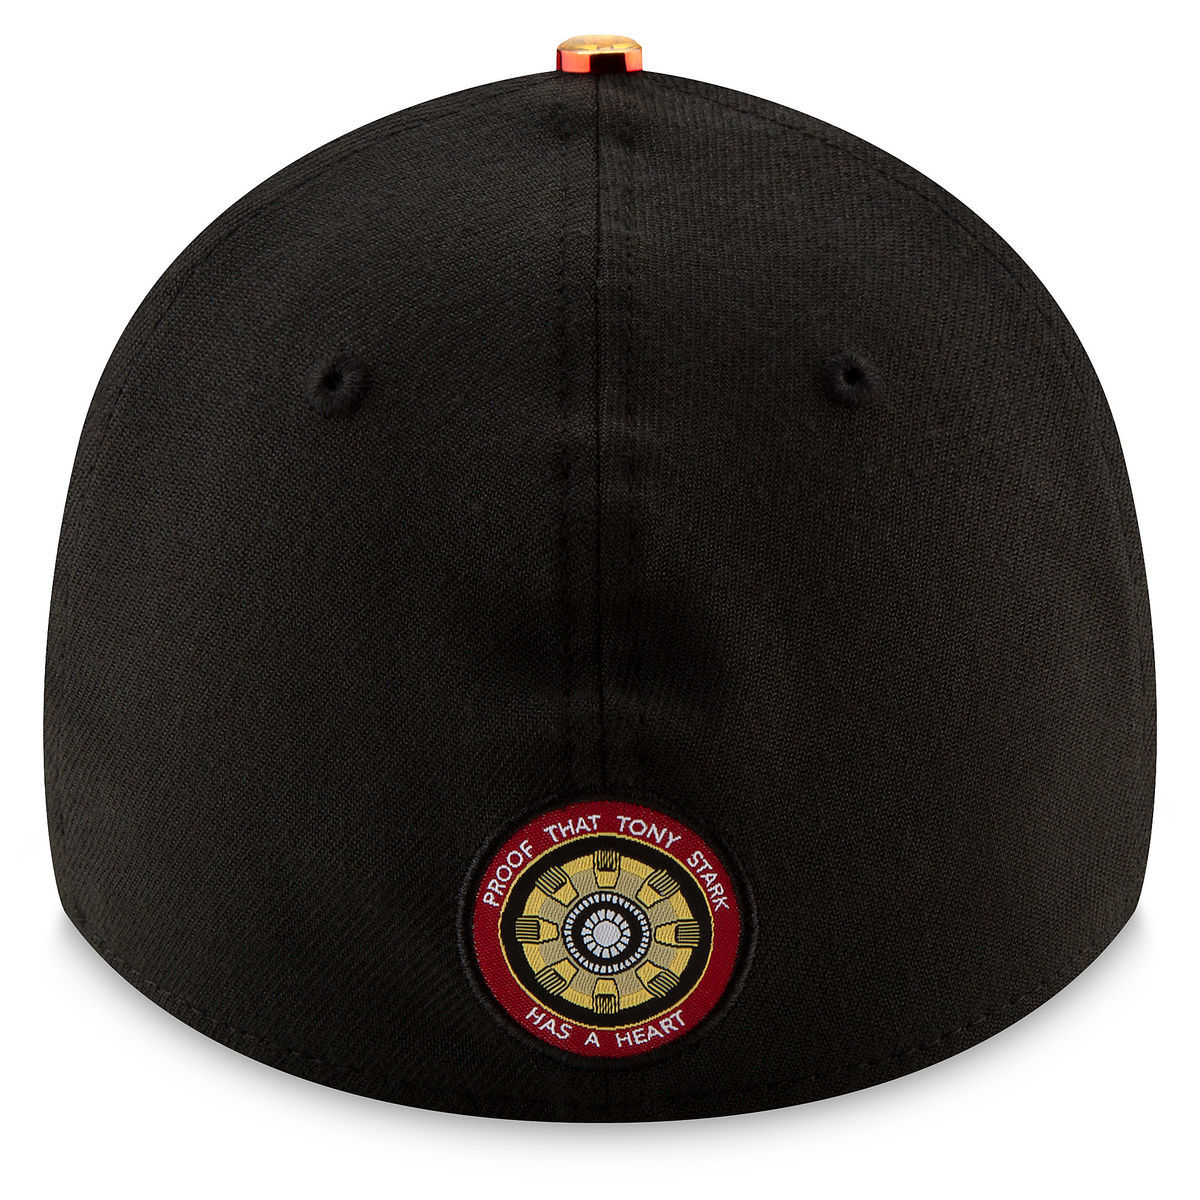 Limited Edition Collector Boxed Iron Man Cap by New Era - Marvel Studios  Crew Cap Collection 54b03807a000